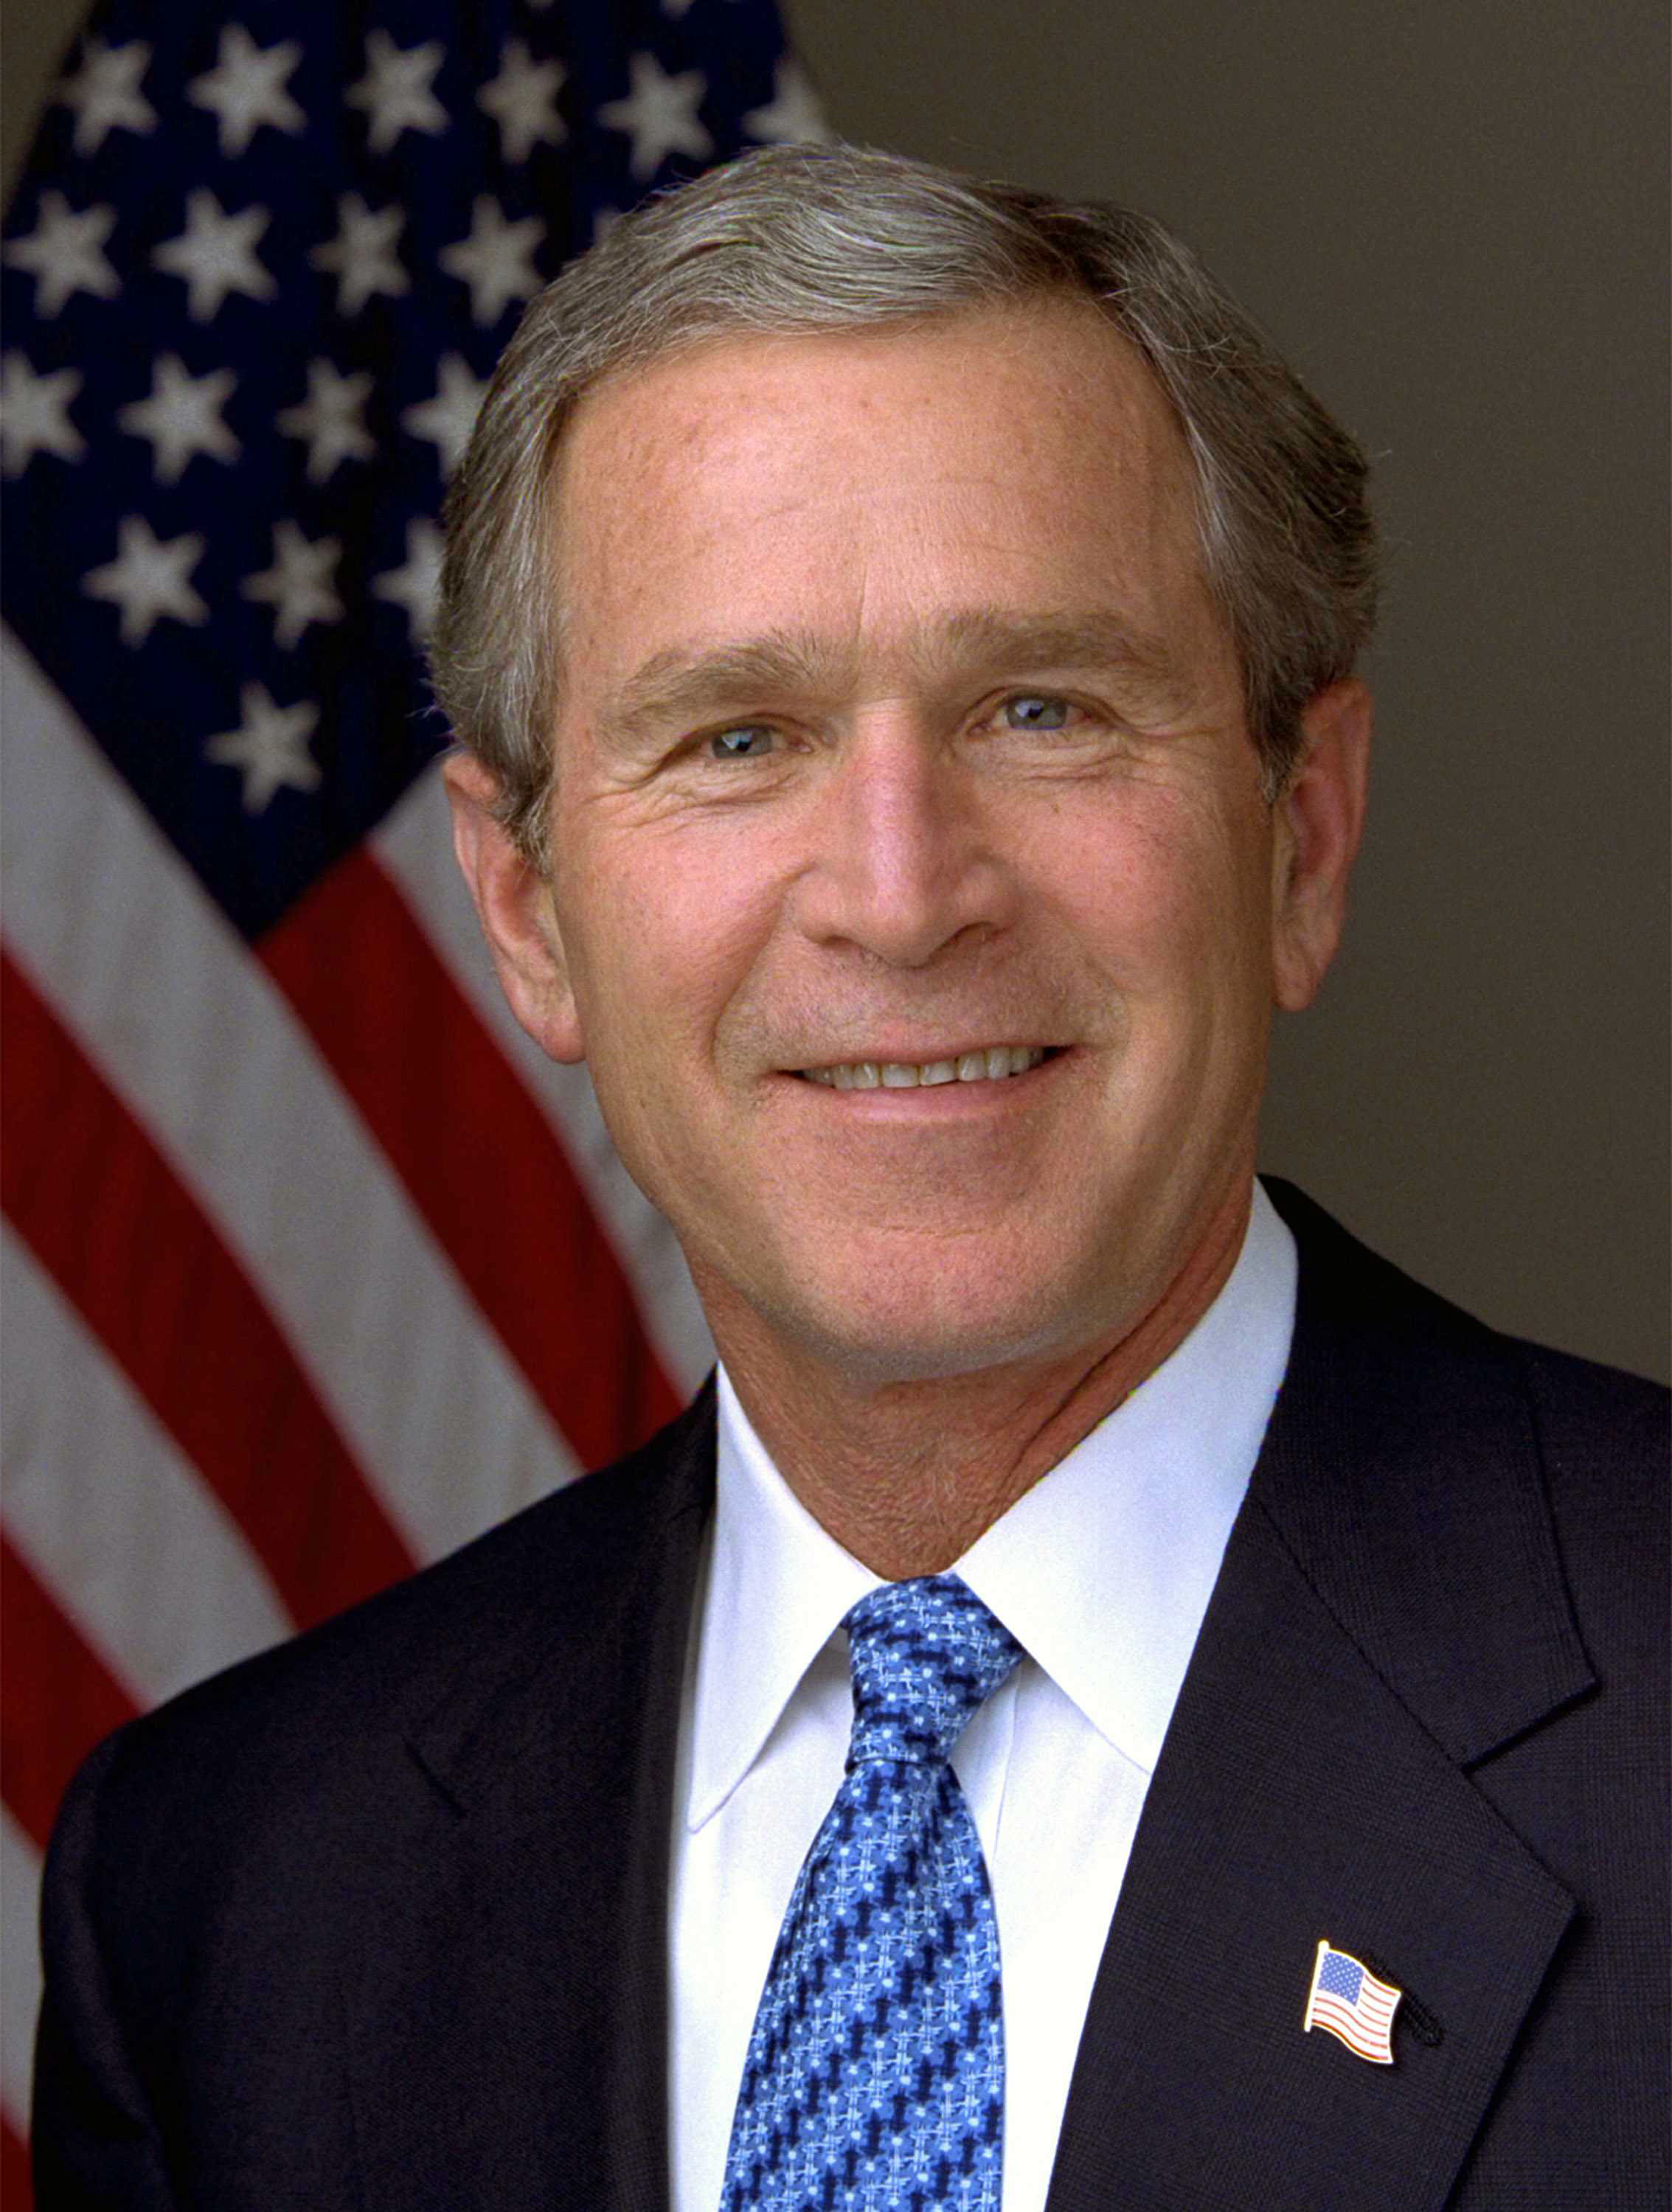 President George W. Bush with Flag Pin